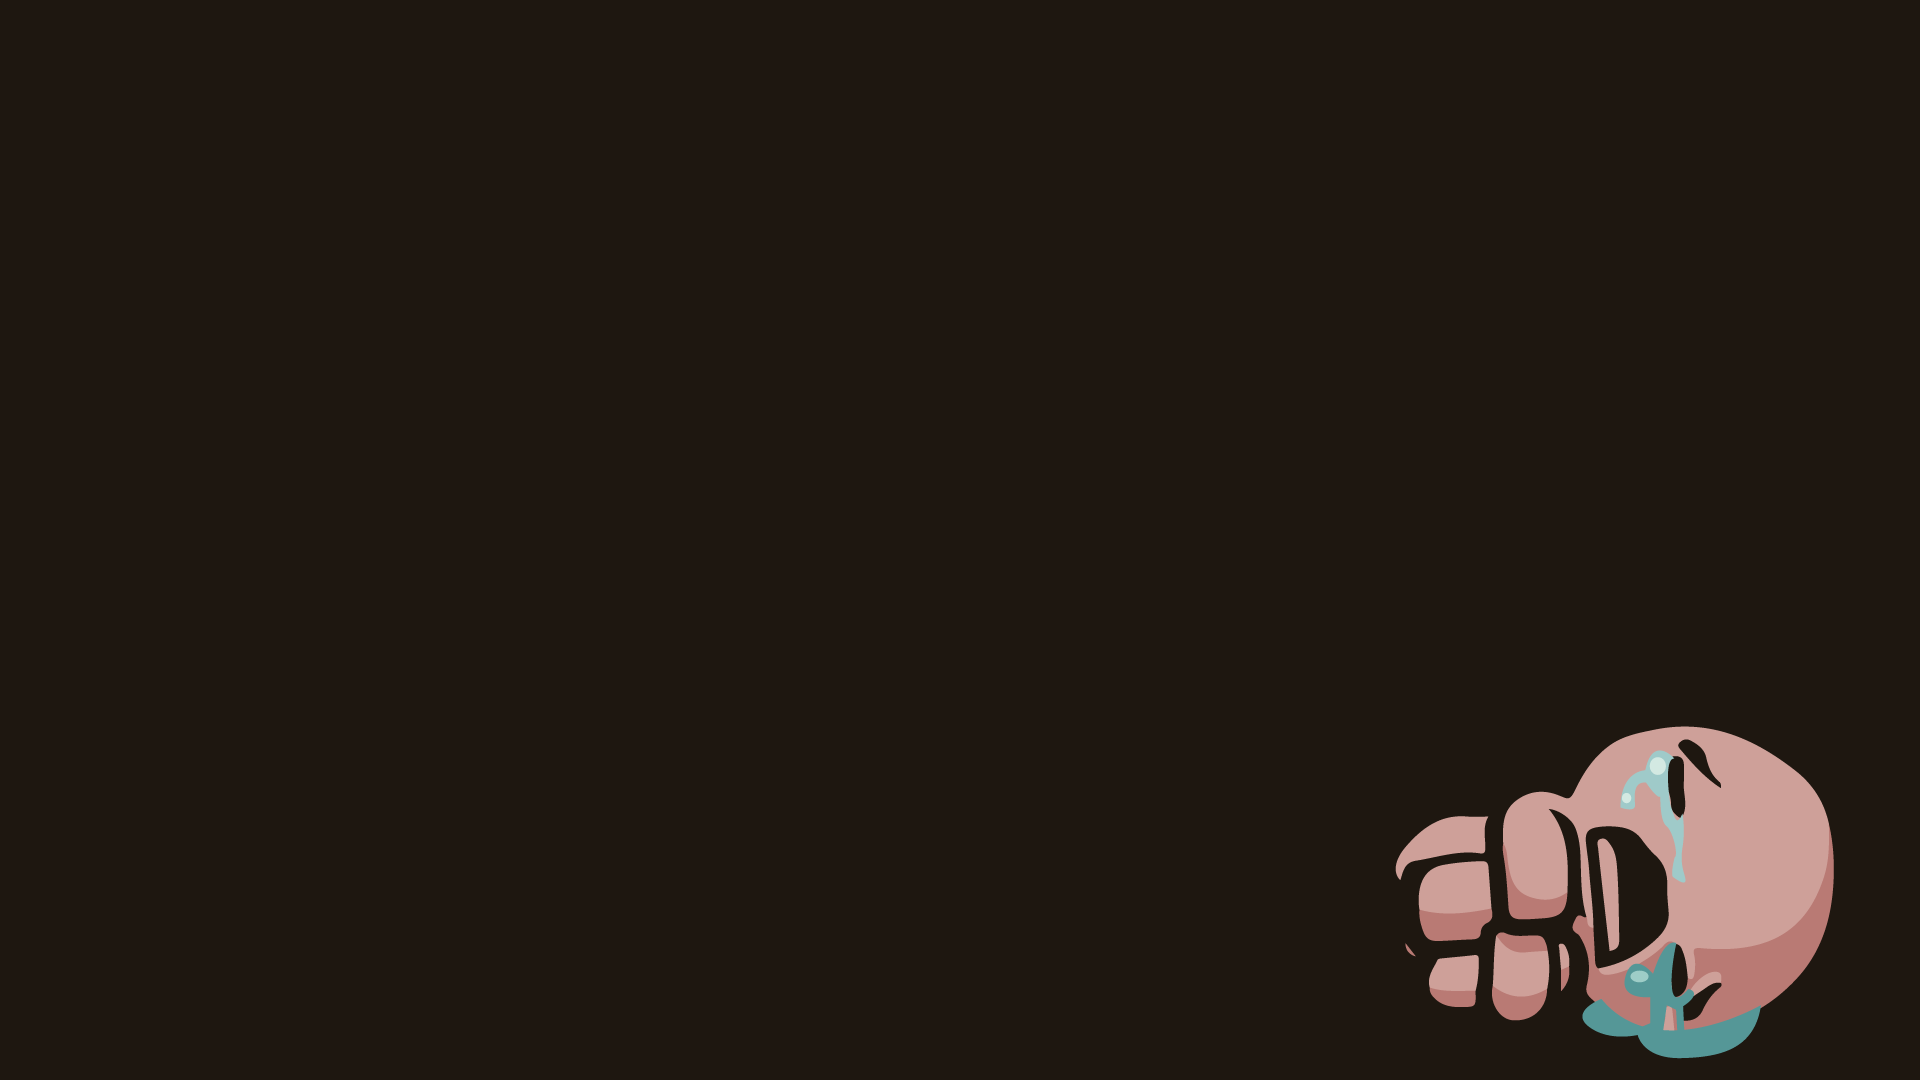 The Binding Of Isaac Hd Wallpaper Background Image 1920x1080